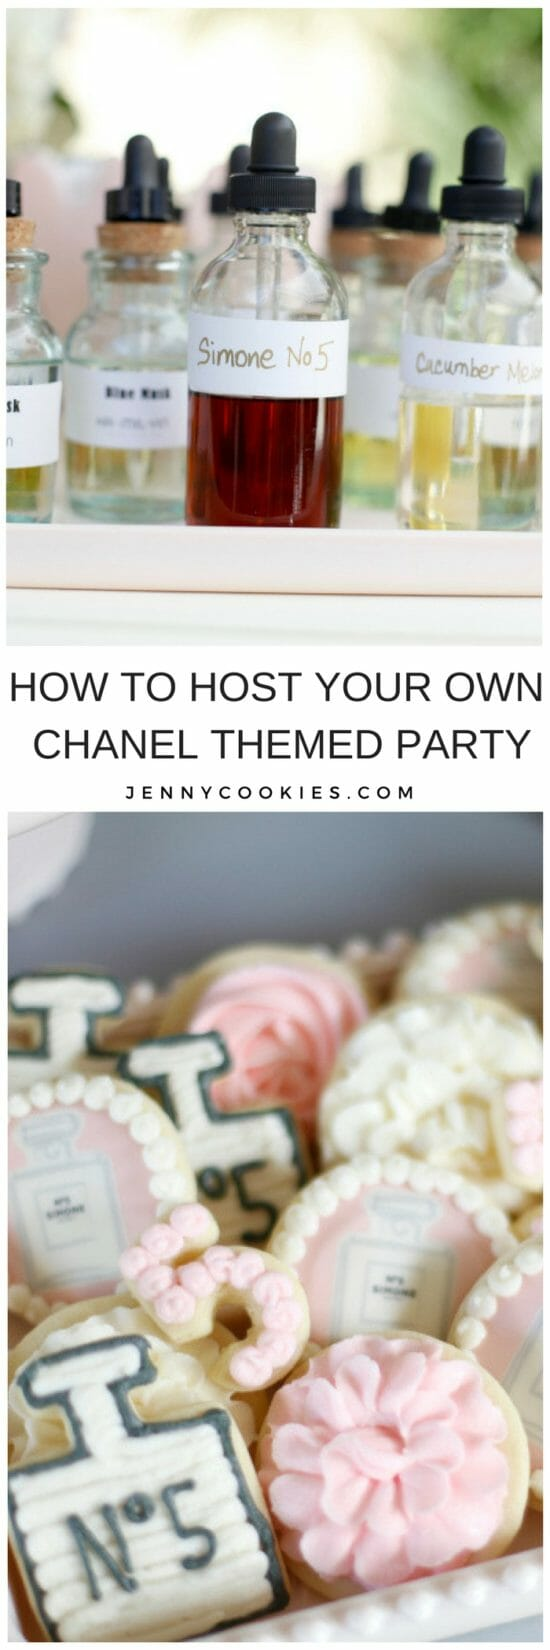 Chanel Inspired Birthday Party   chanel themed party   chanel party ideas   themed birthday party ideas   girl birthday parties   kids birthday parties   diy birthday party ideas    JennyCookies.com #chanel #chanelparty #themedparty #kidsbirthdayparty